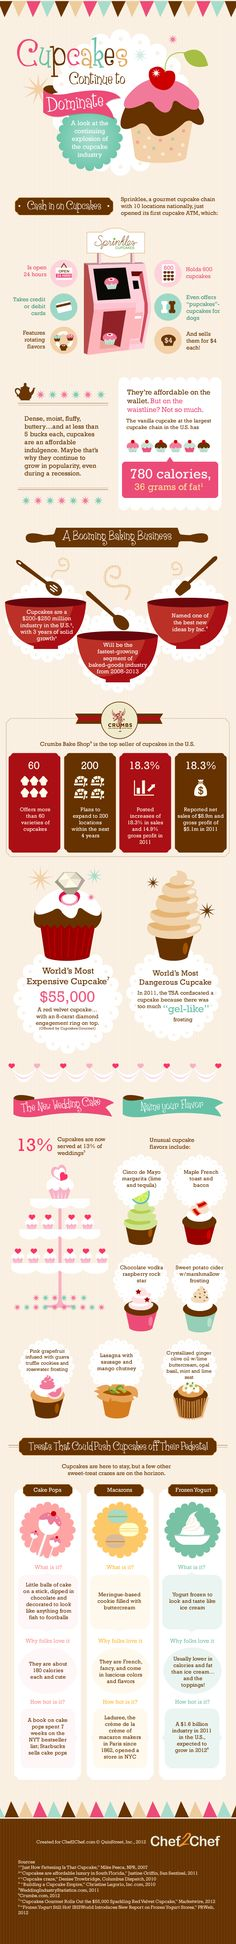 Cupcakes continue to dominate. The idea of a cupcake ATM should be named the invention of the year.